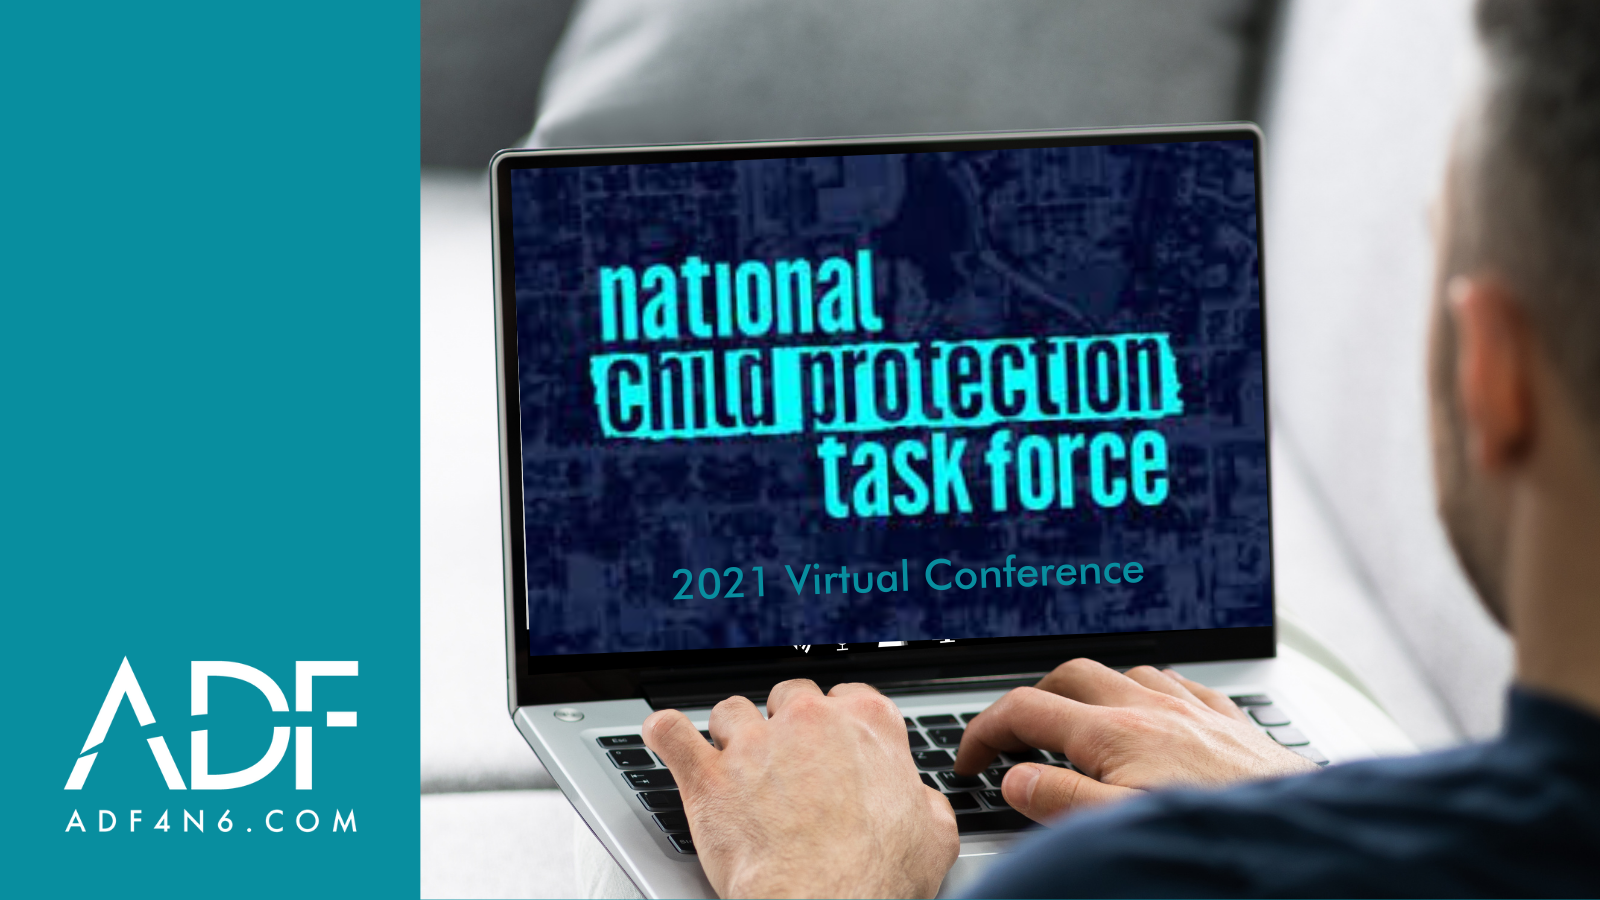 National Child Protection Task Force Virtual Conference